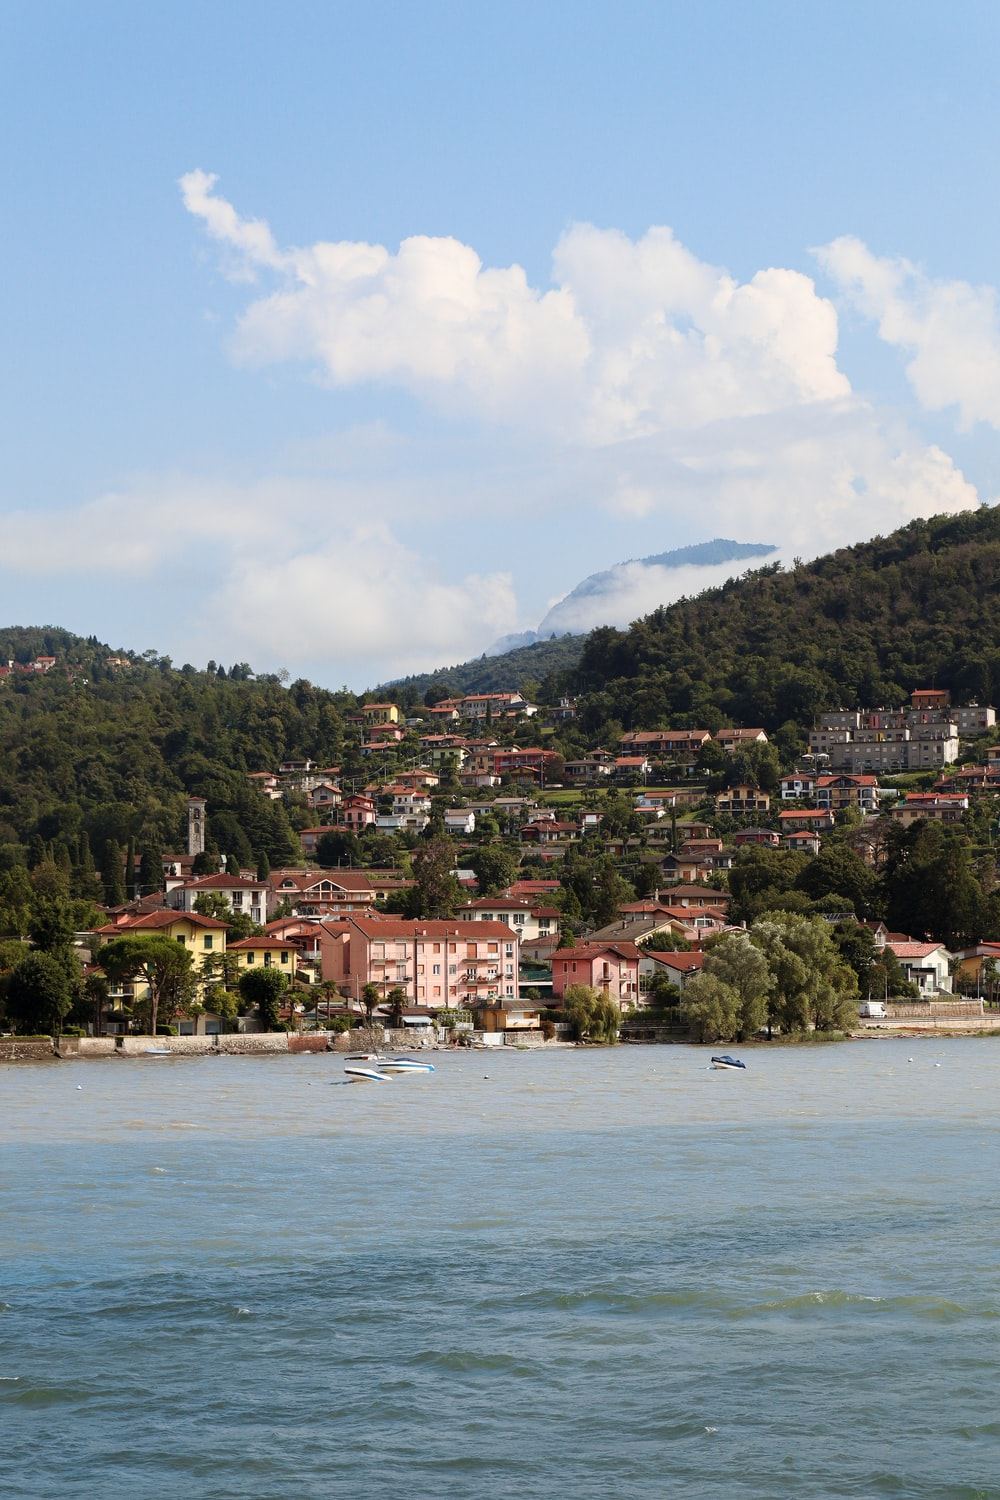 houses on mountain near body of water during daytime